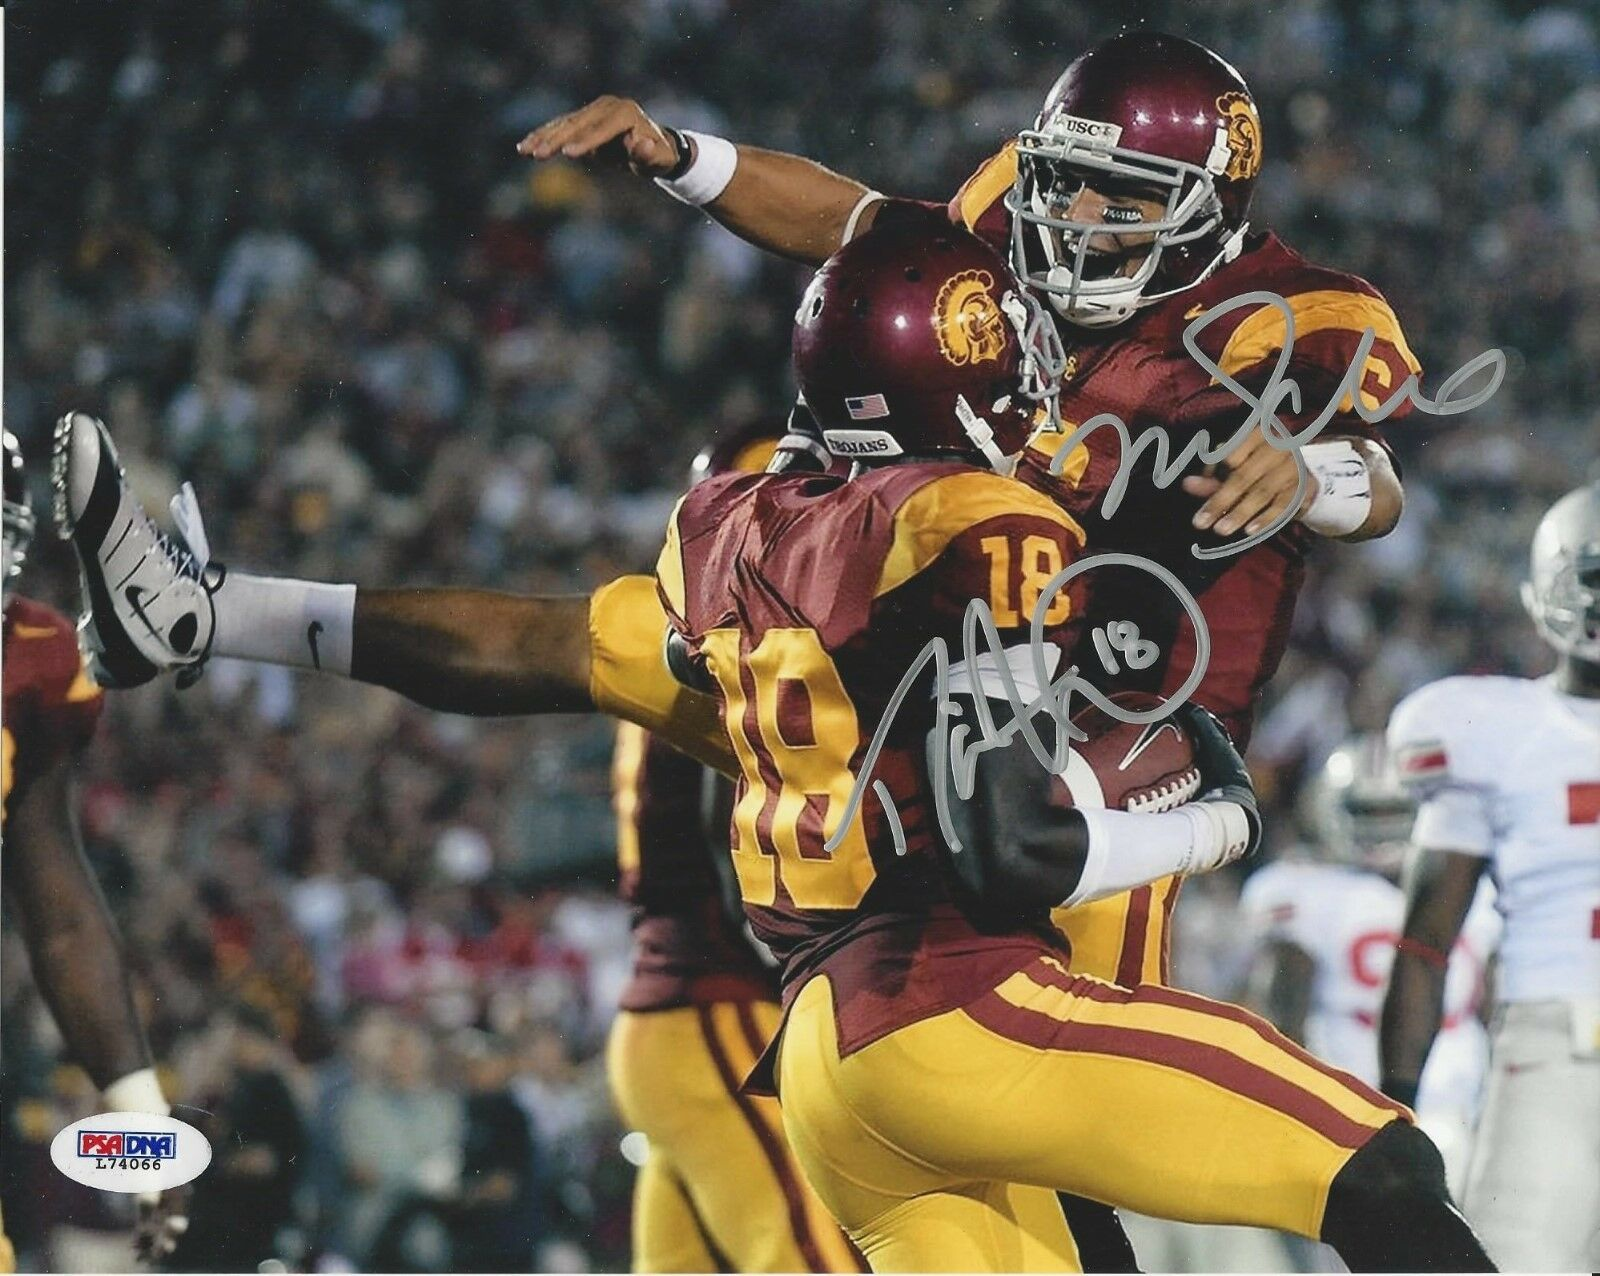 Mark Sanchez & Damian Williams USC Trojans signed 8x10 photo PSA/DNA # L74066